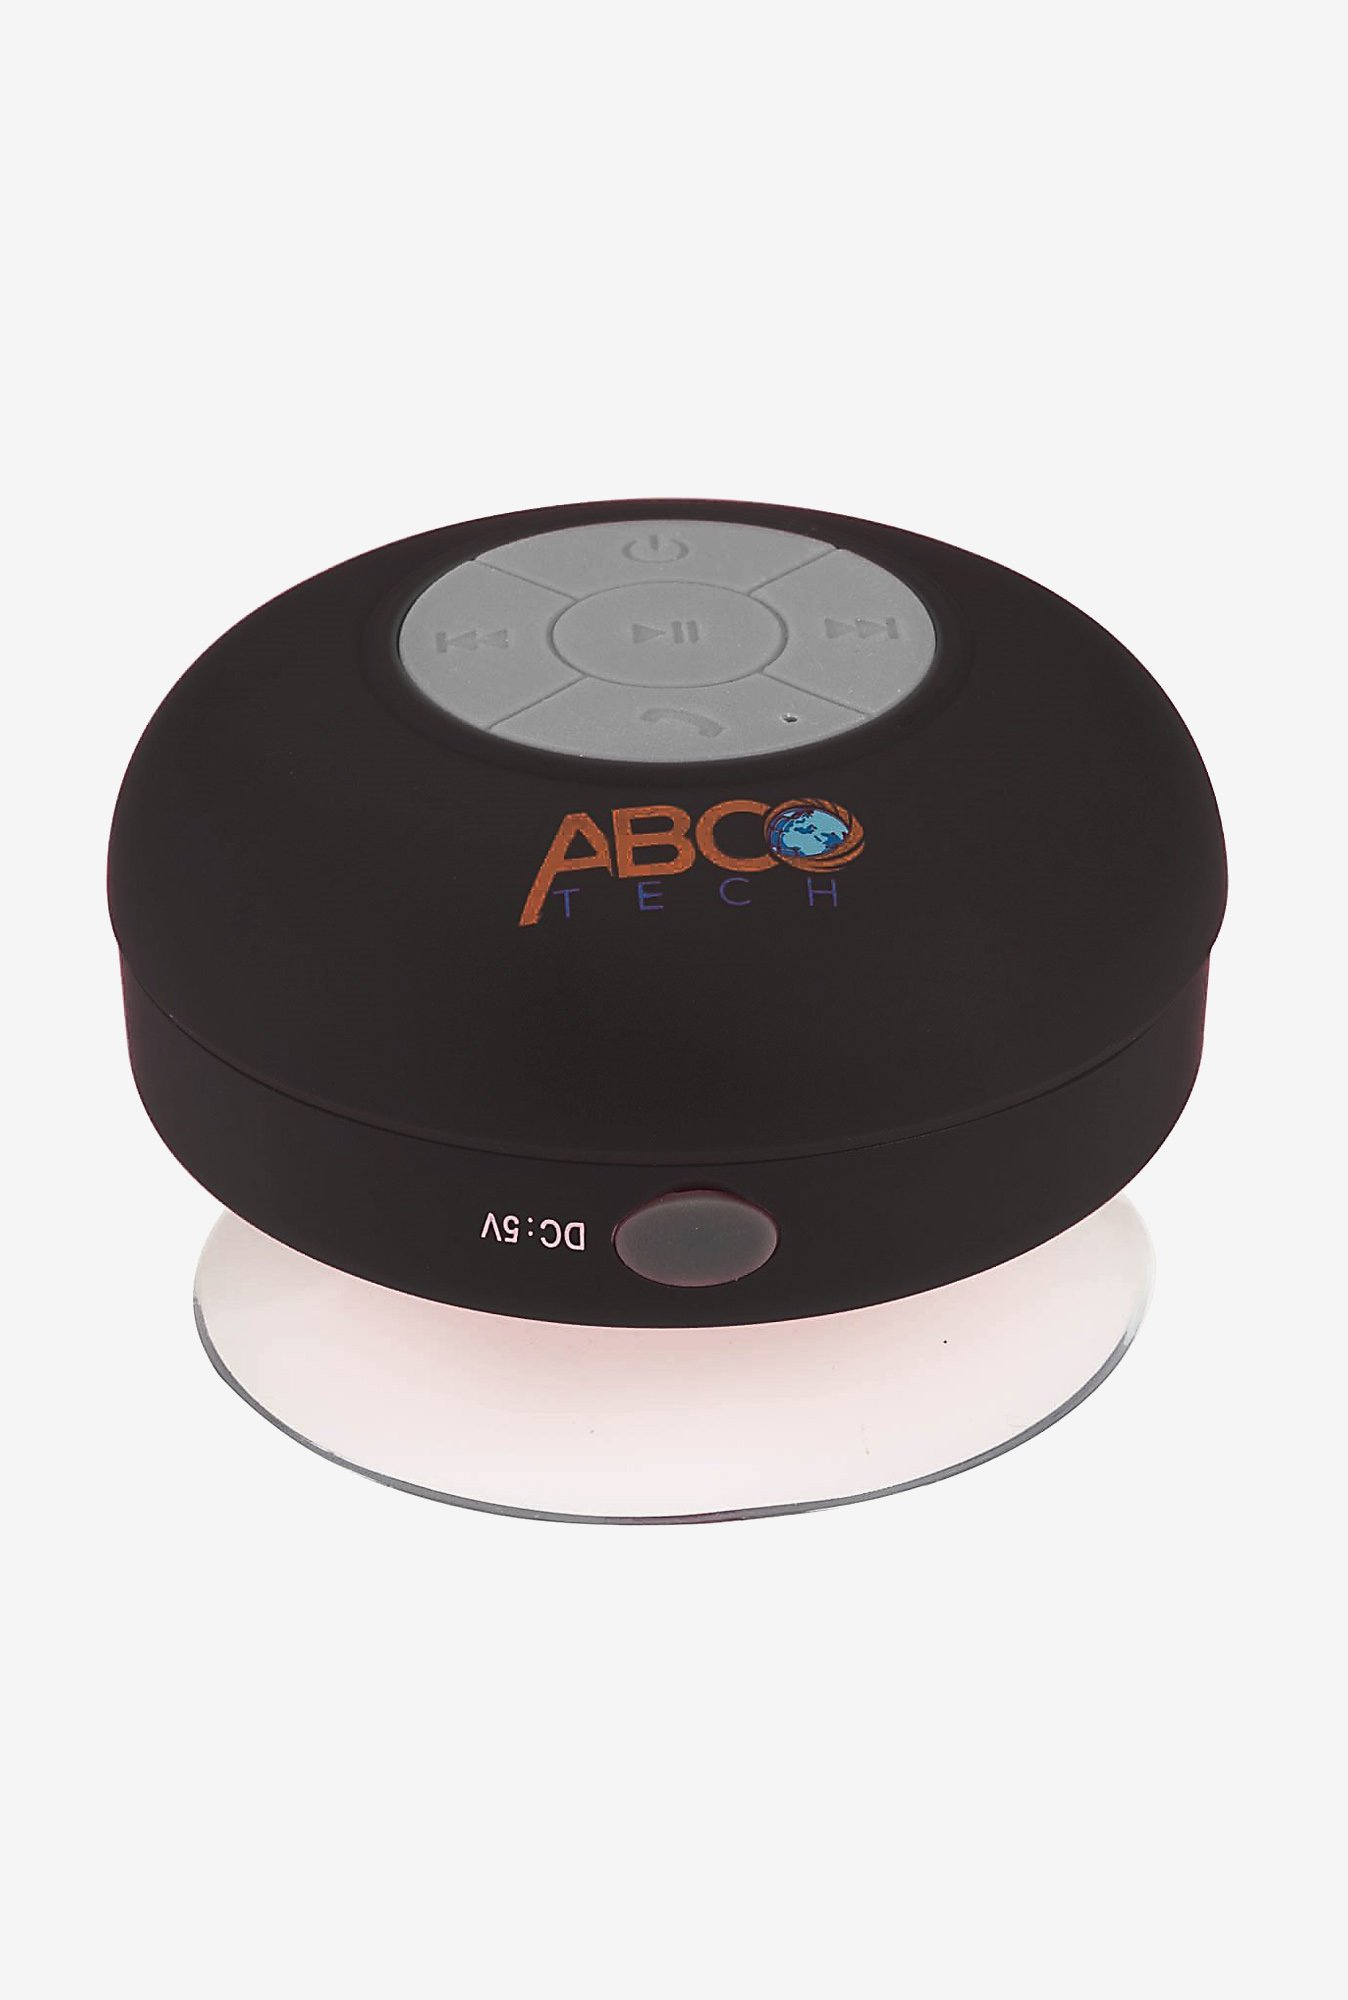 Abco Tech Water Resistant Bluetooth Shower Speaker (Black)